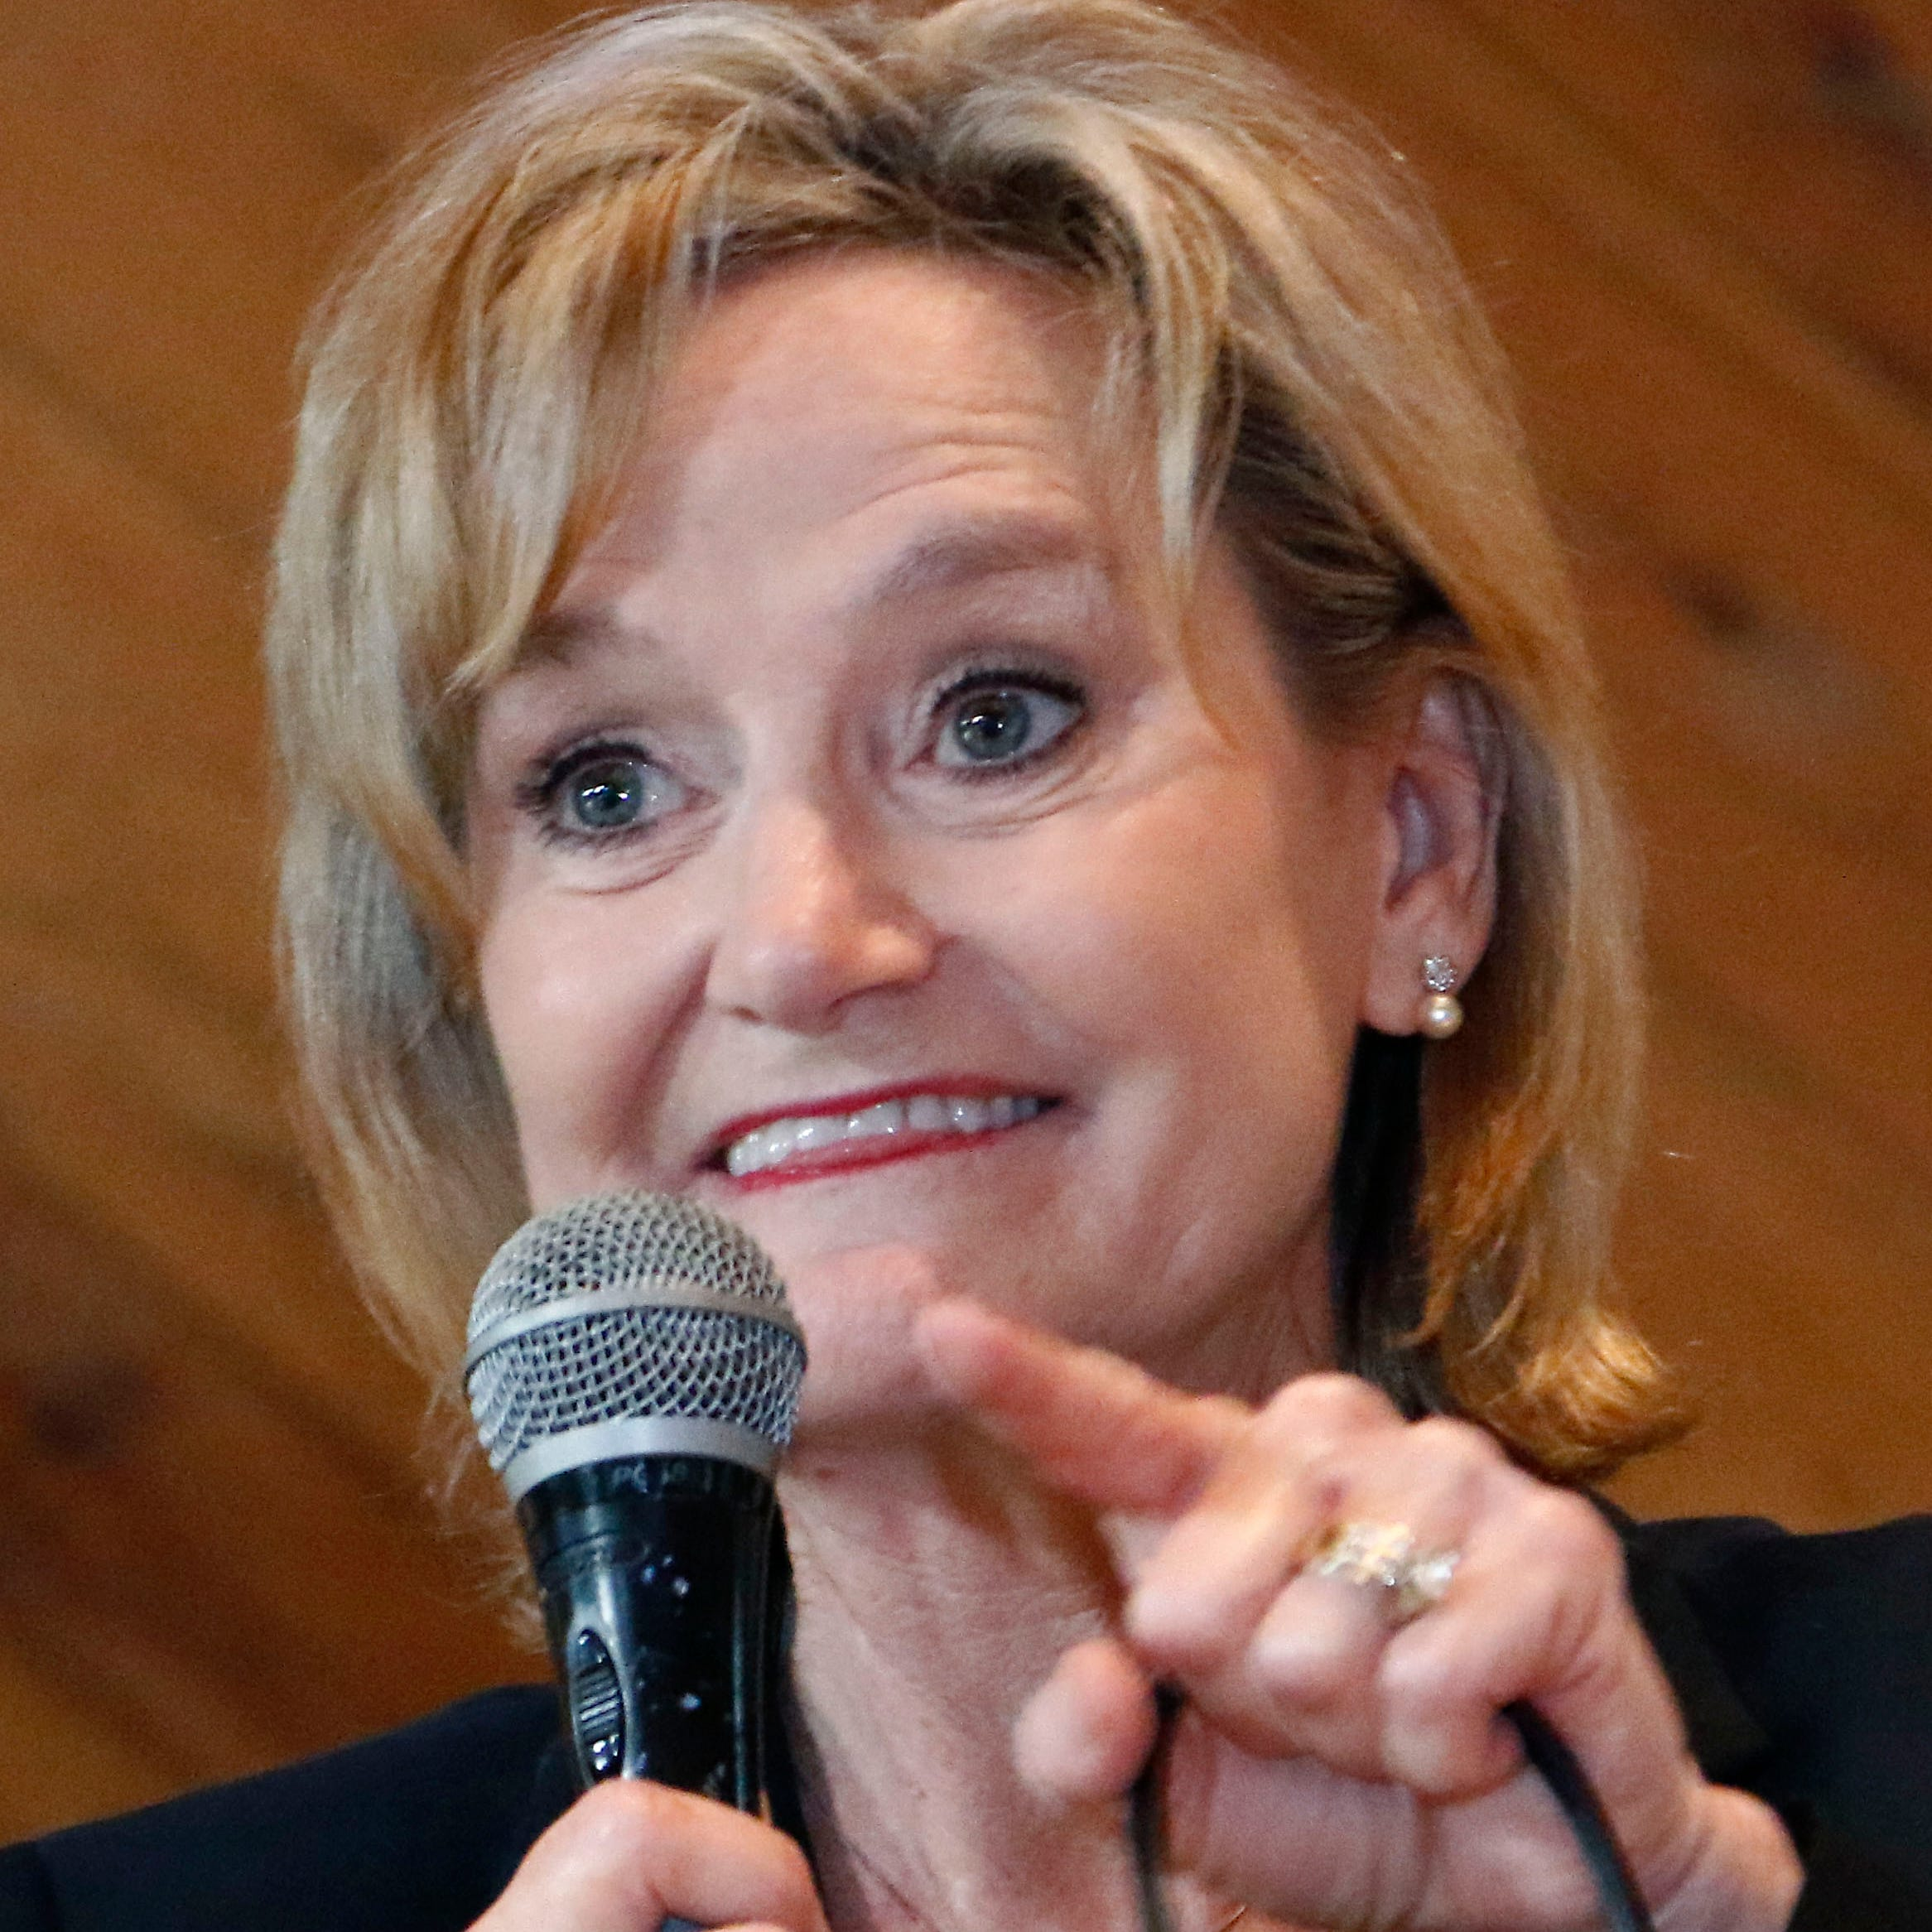 Historic lynching photo used in new Hyde-Smith attack ad after 'public hanging' comments